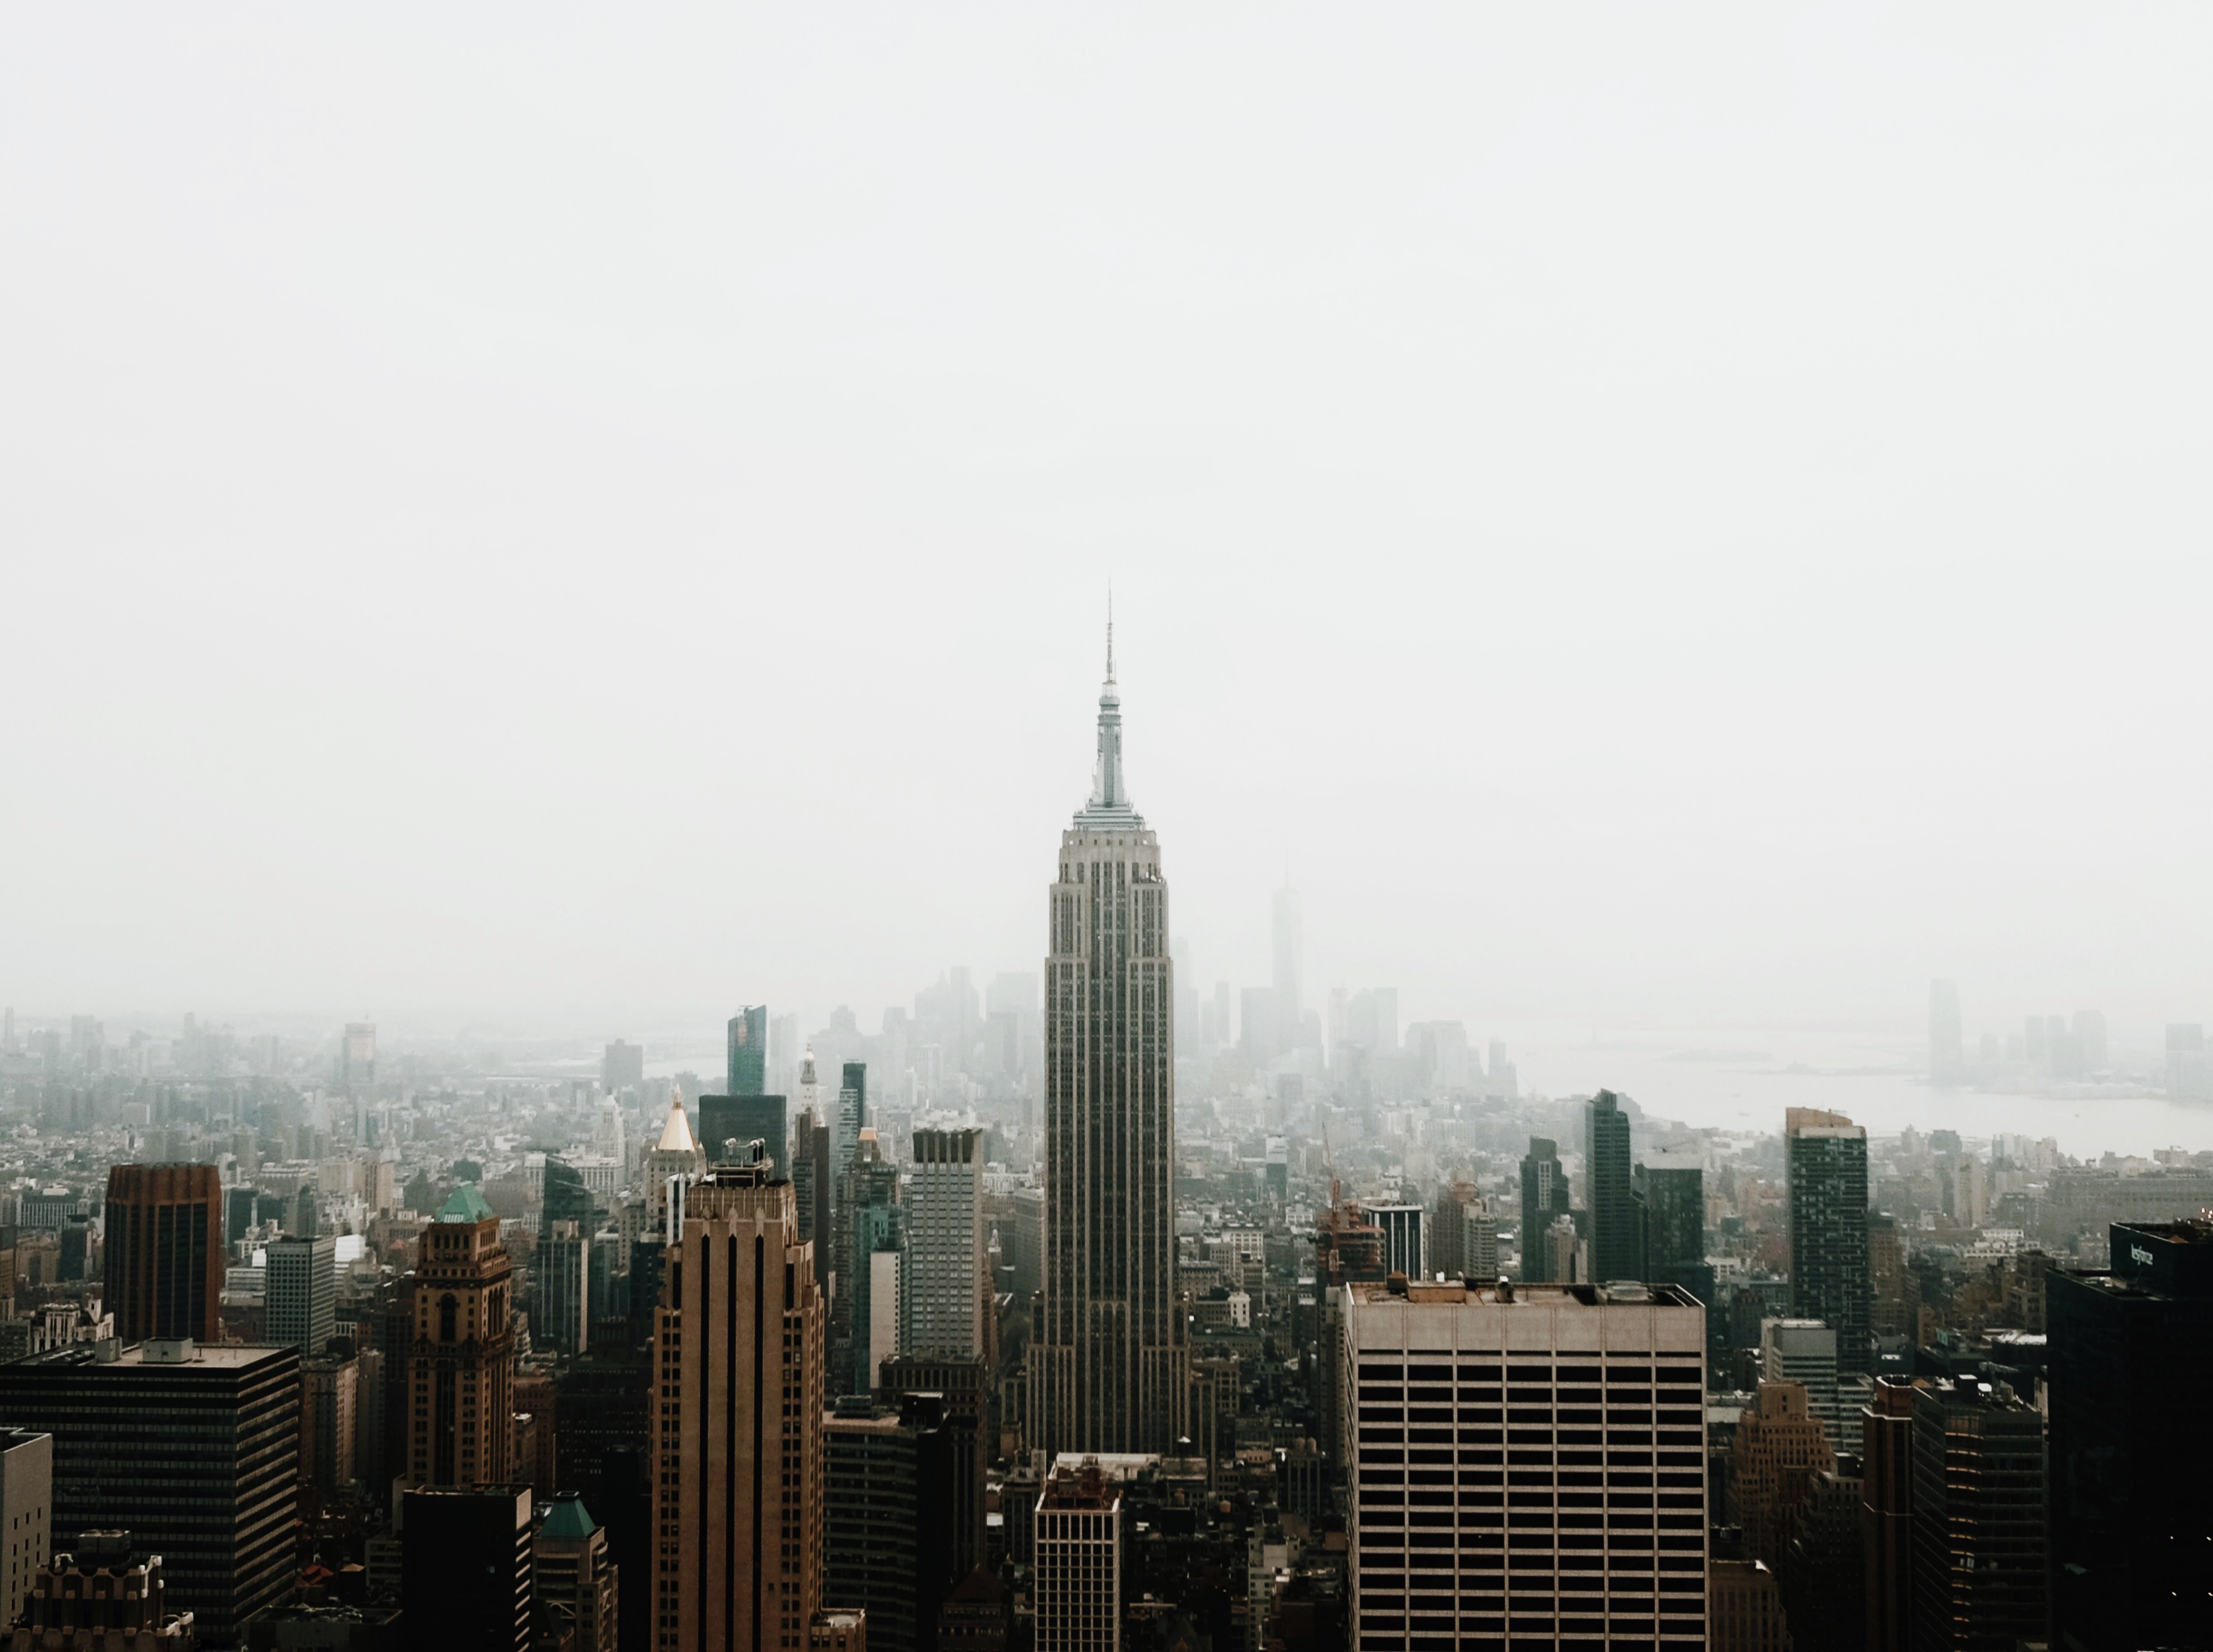 The Empire State Building and New York City skyline on a foggy day